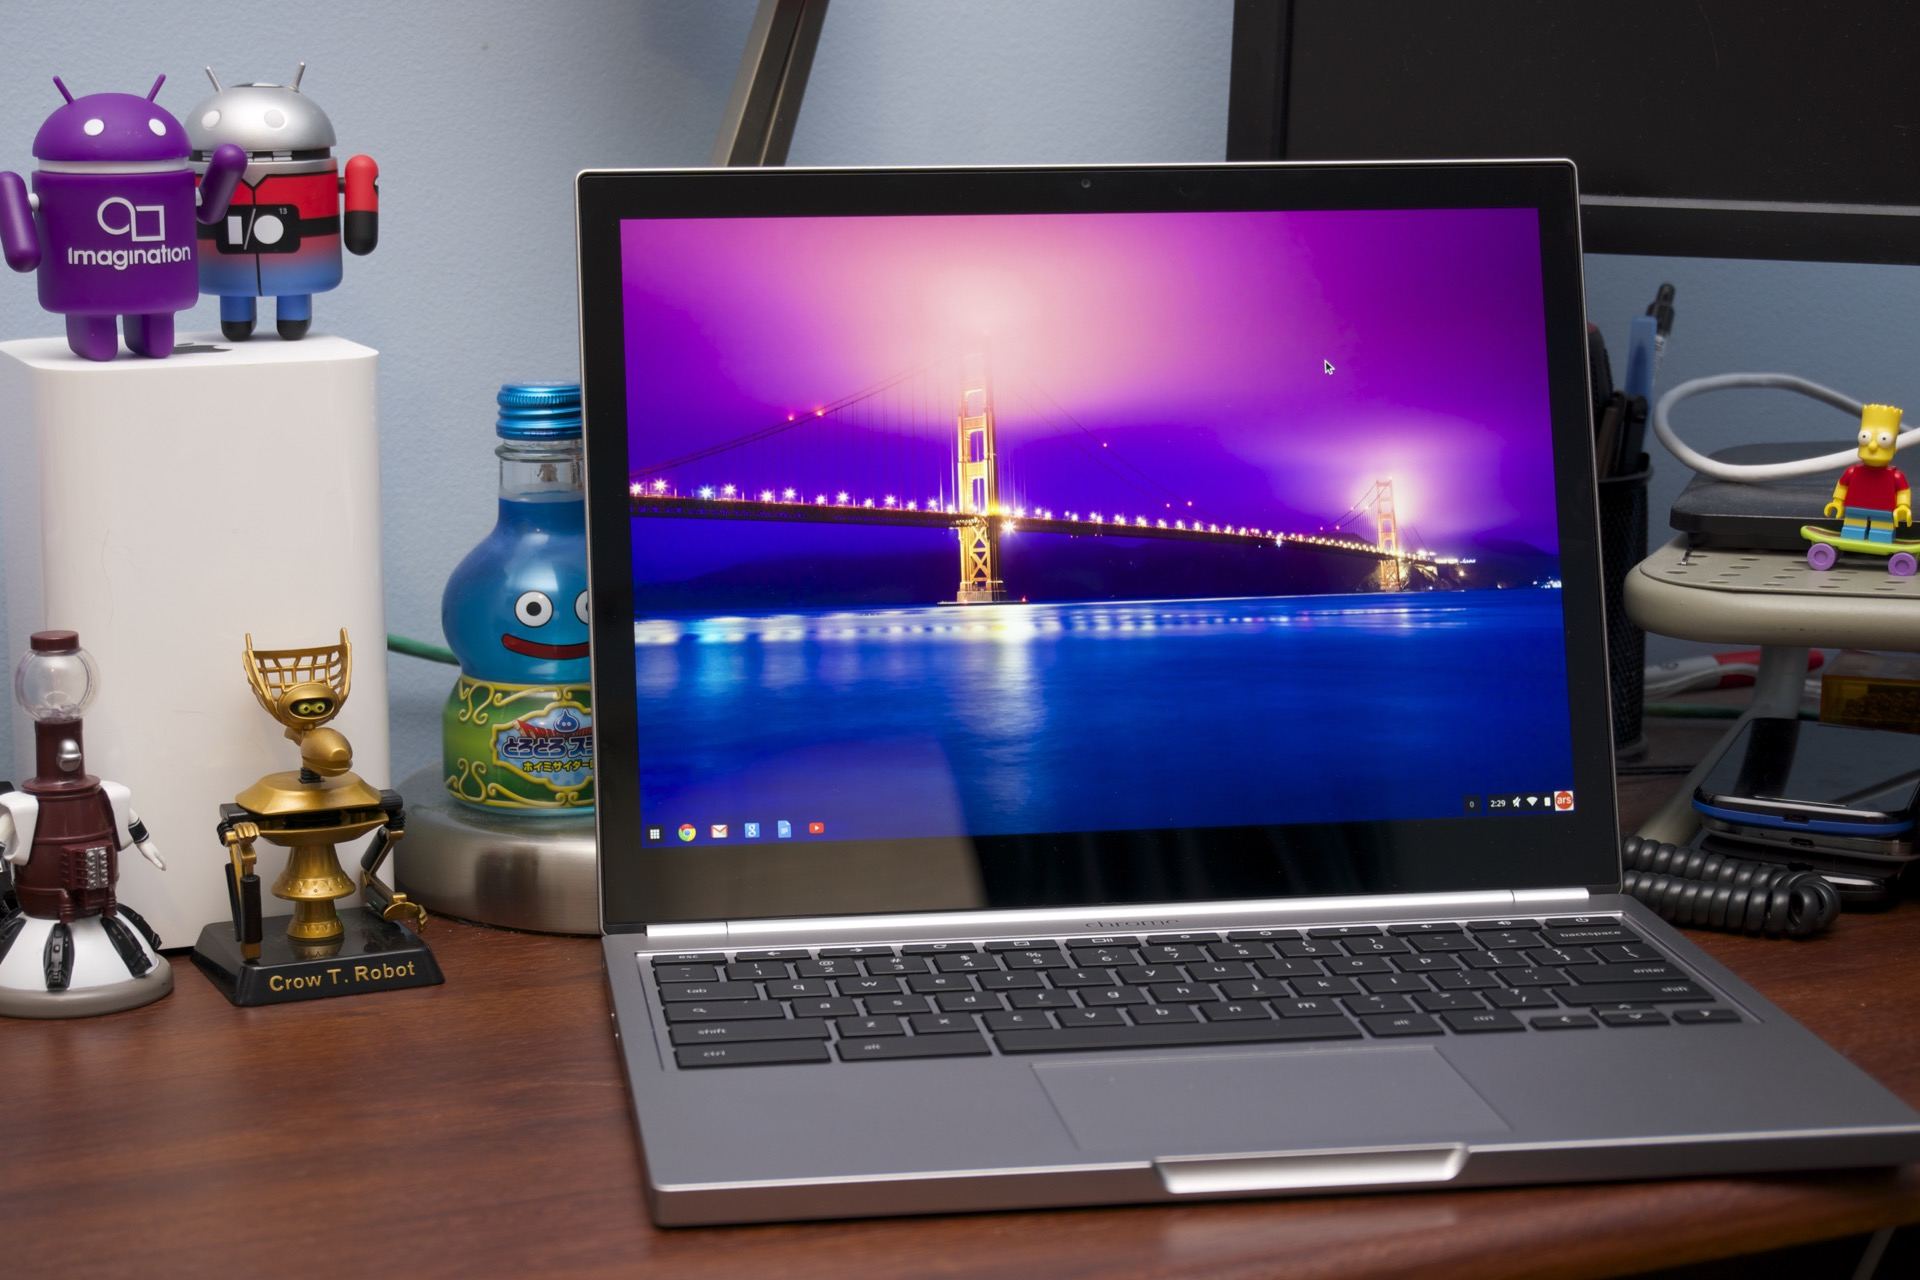 Older Chromebooks, including the original Pixel, won't run Android